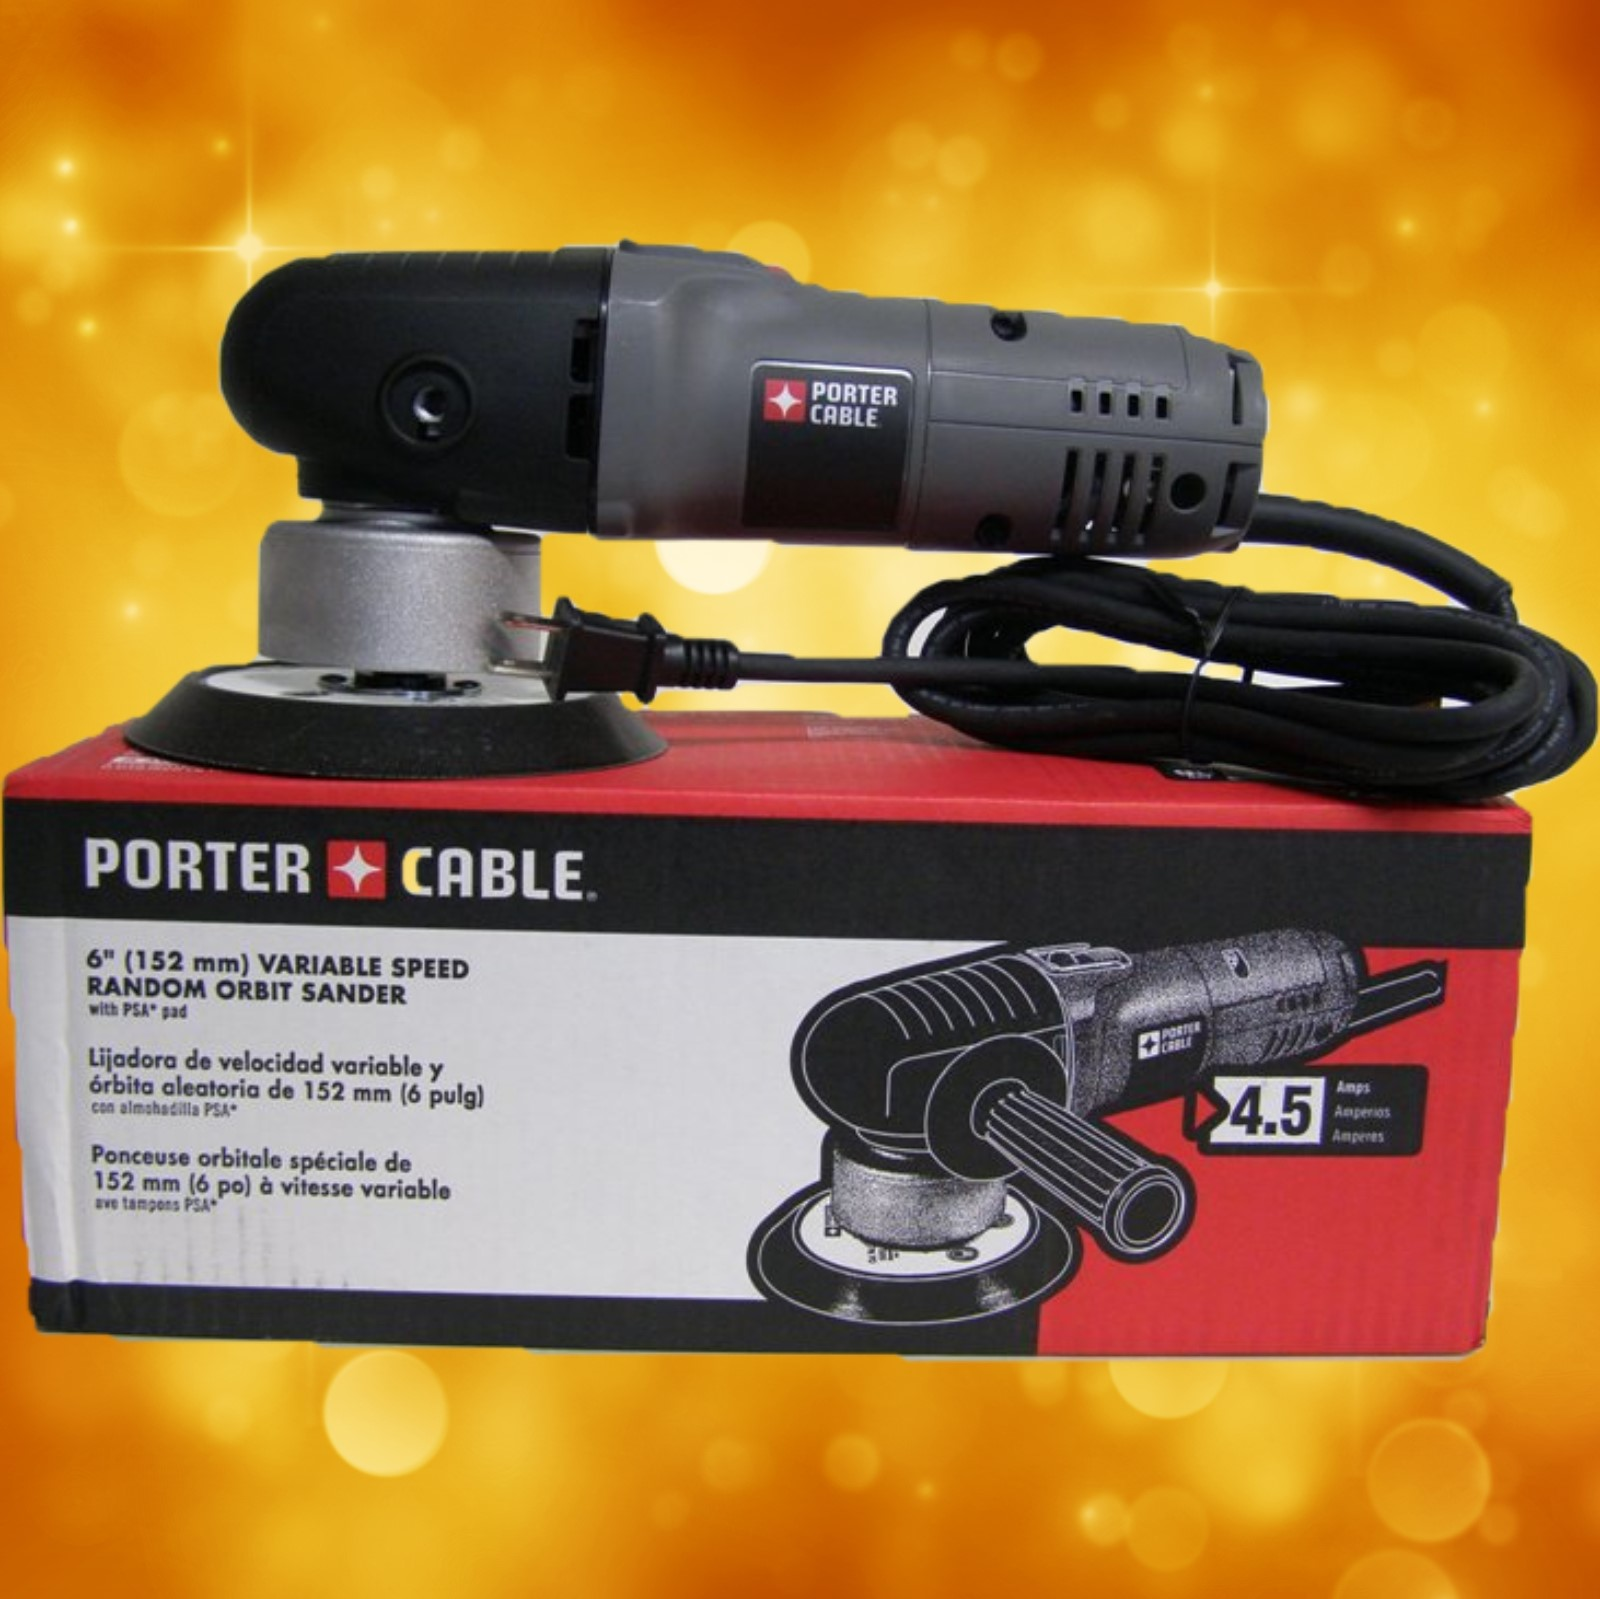 "Porter Cable Sander 7346 6"" Variable-Speed Random Orbit Sander 7346"